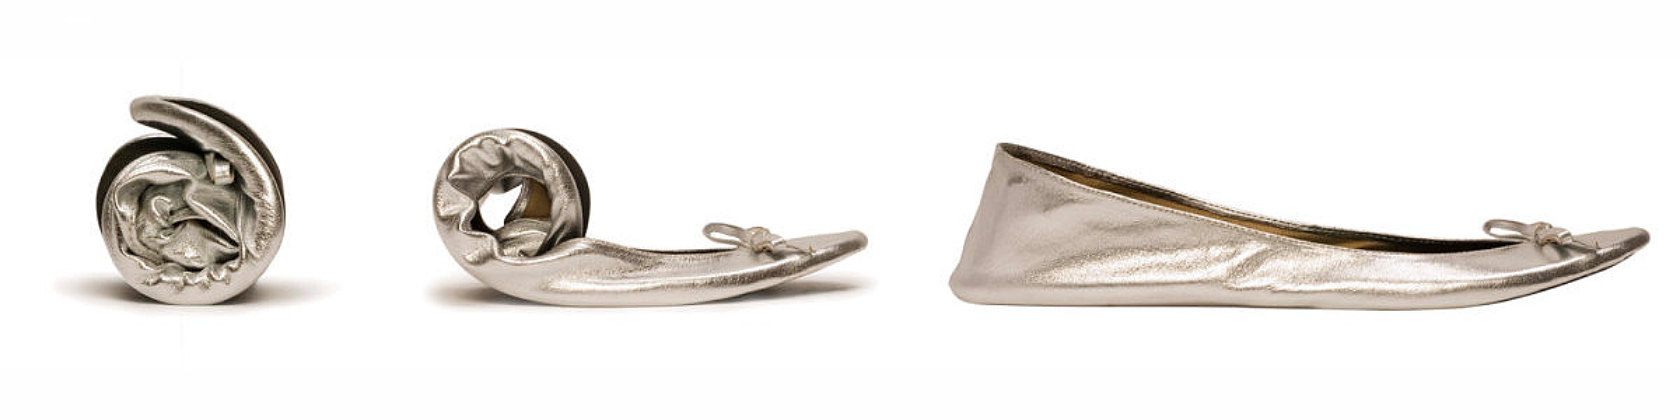 These are the best folding flats for bridesmaids gifts and wedding guests. Comfy, lightweight, cute, and super affordable! By Cinderollies.